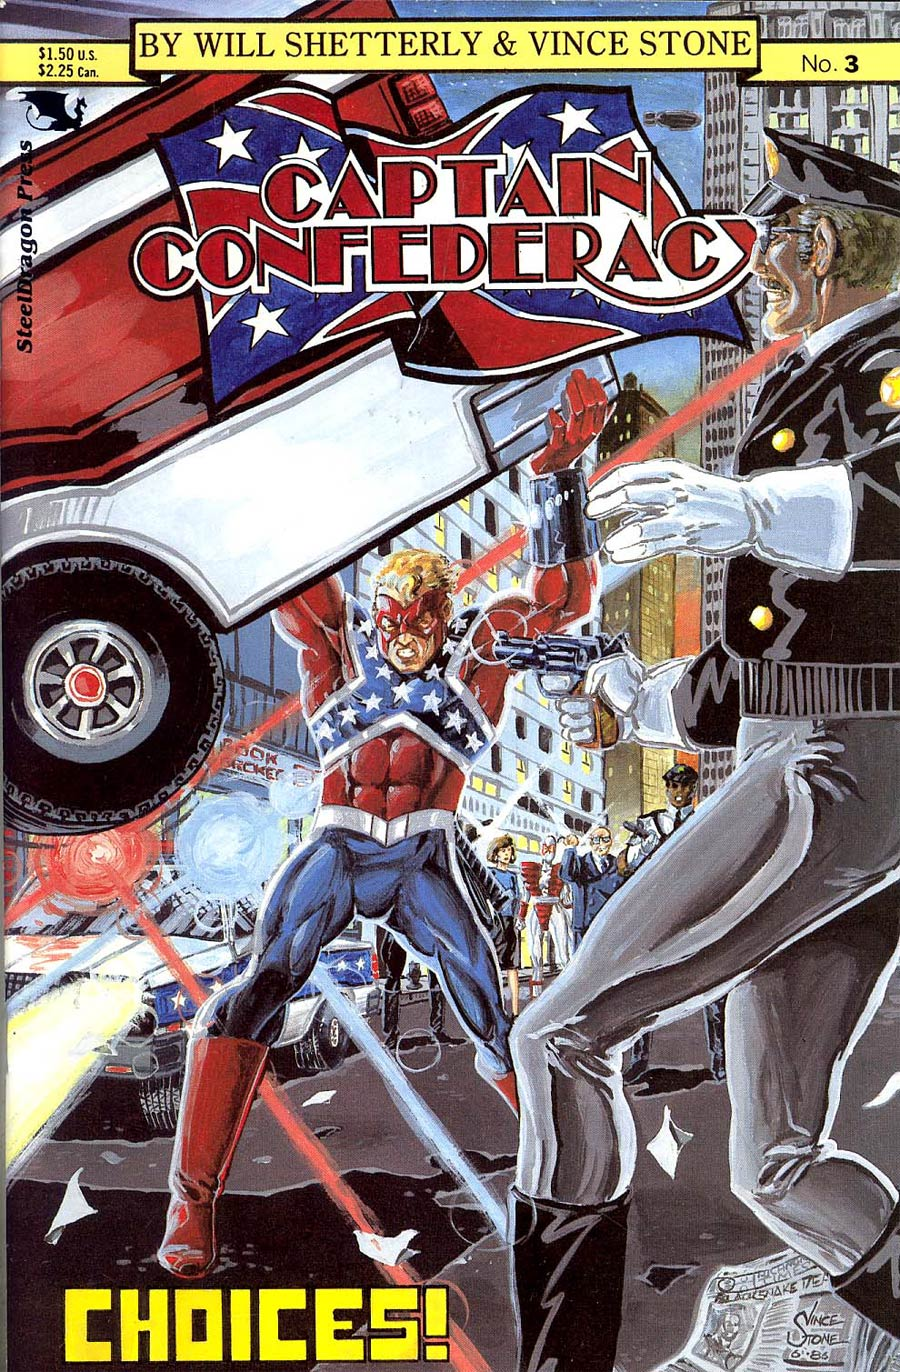 Captain Confederacy #3